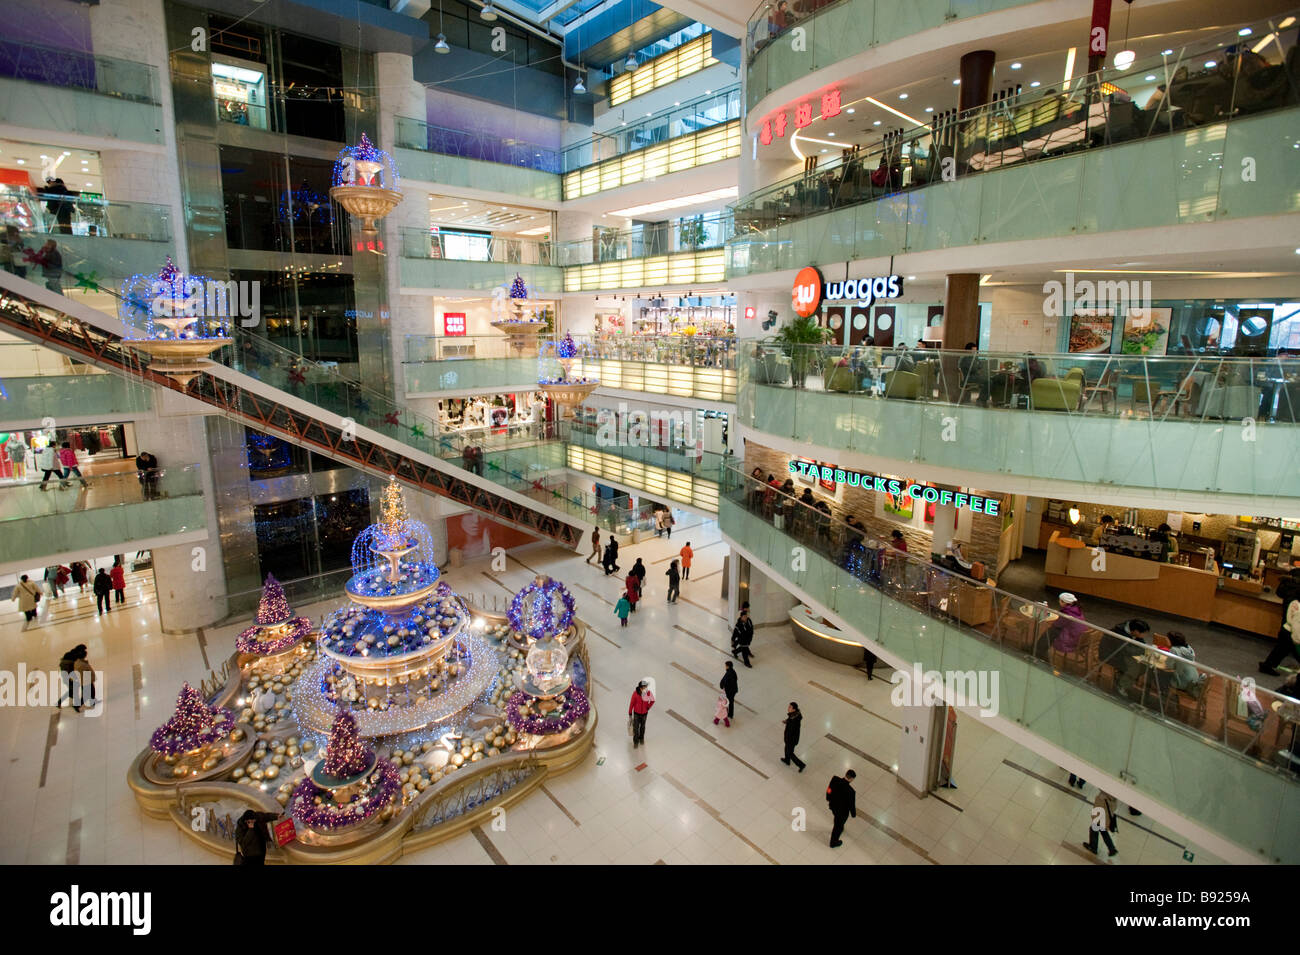 Interior of modern new Joy City shopping mall in Xidan district of Beijing China - Stock Image